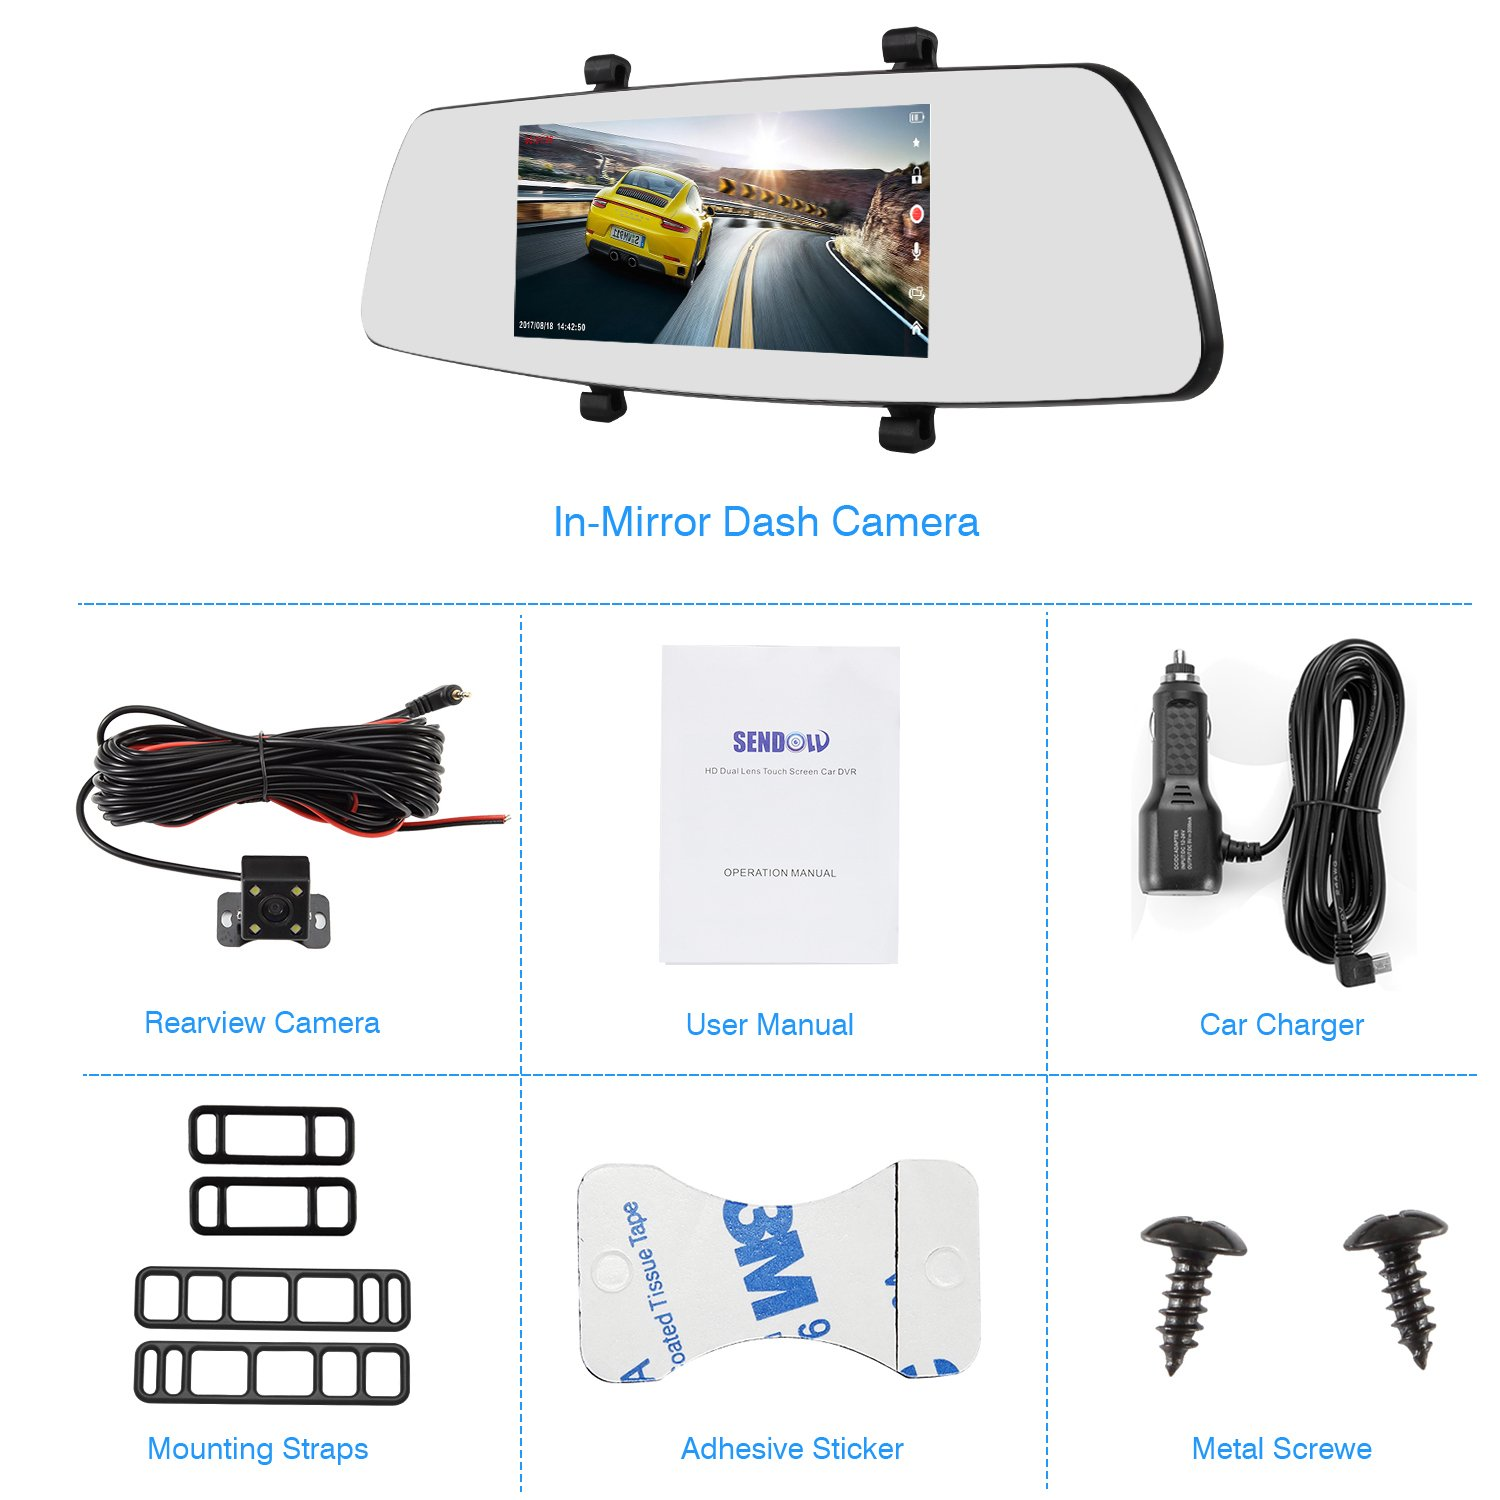 SENDOW Mirror Dual Dash Camera 7 Inch 1080P IPS Touch Screen 170° Wide Angle Rearview Dash Camera Vehicle Recorder, Car DVR with Parking Monitor WDR Loop Recording by SENDOW (Image #5)